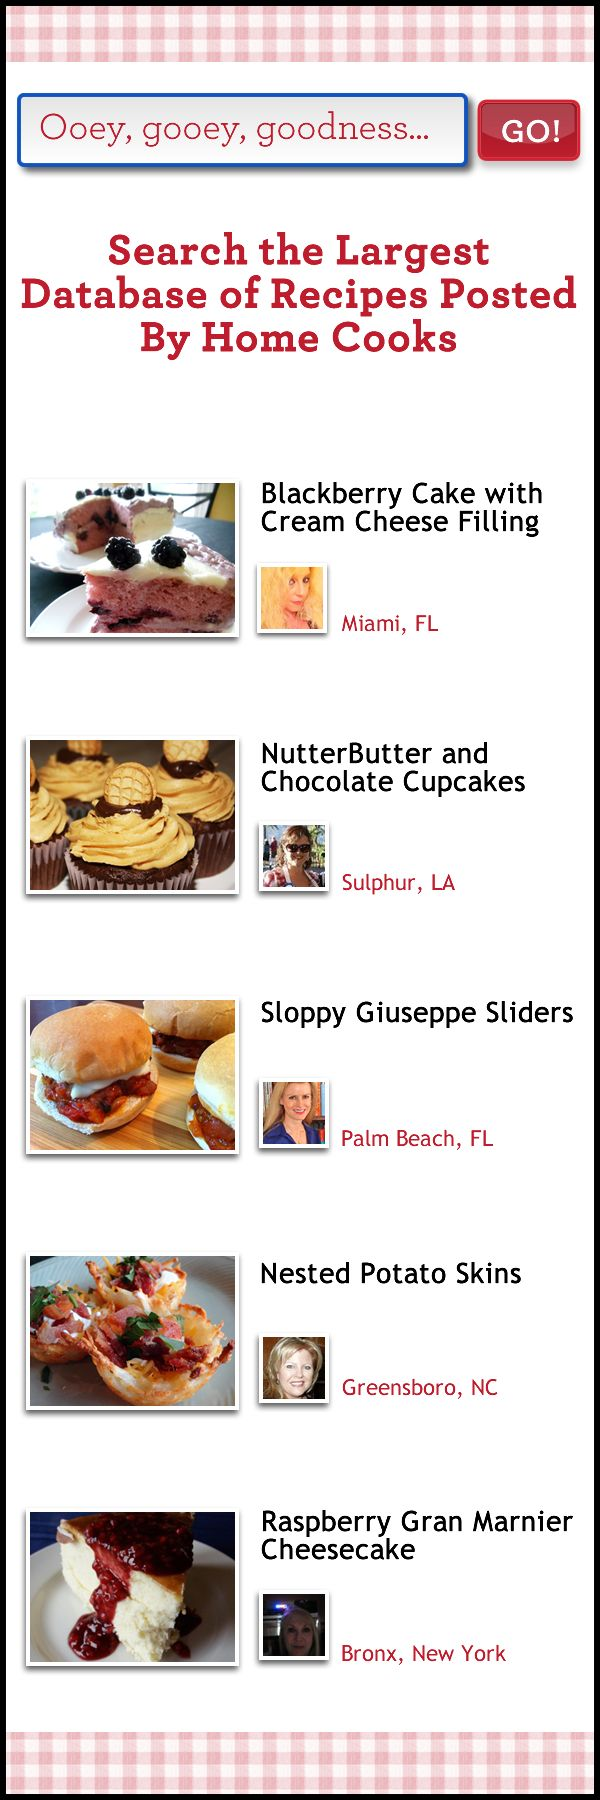 Search the largest database of recipes posted by home cooks There are some great receipes at this site.